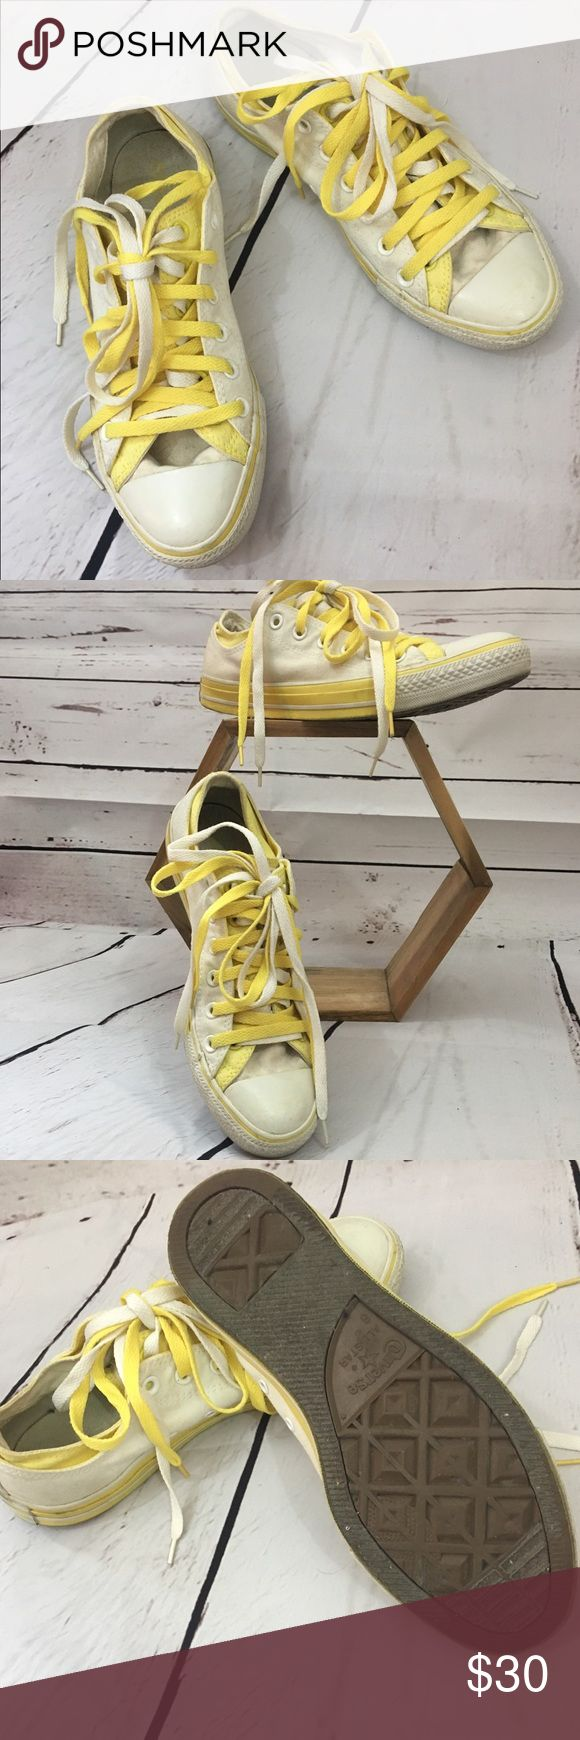 Converse Double Tongue All Stars Double tongue Converse All Stars in sunshine yellow and white. Minor signs of wear. No cracks in leather. Super fun shoes! Converse Shoes Sneakers